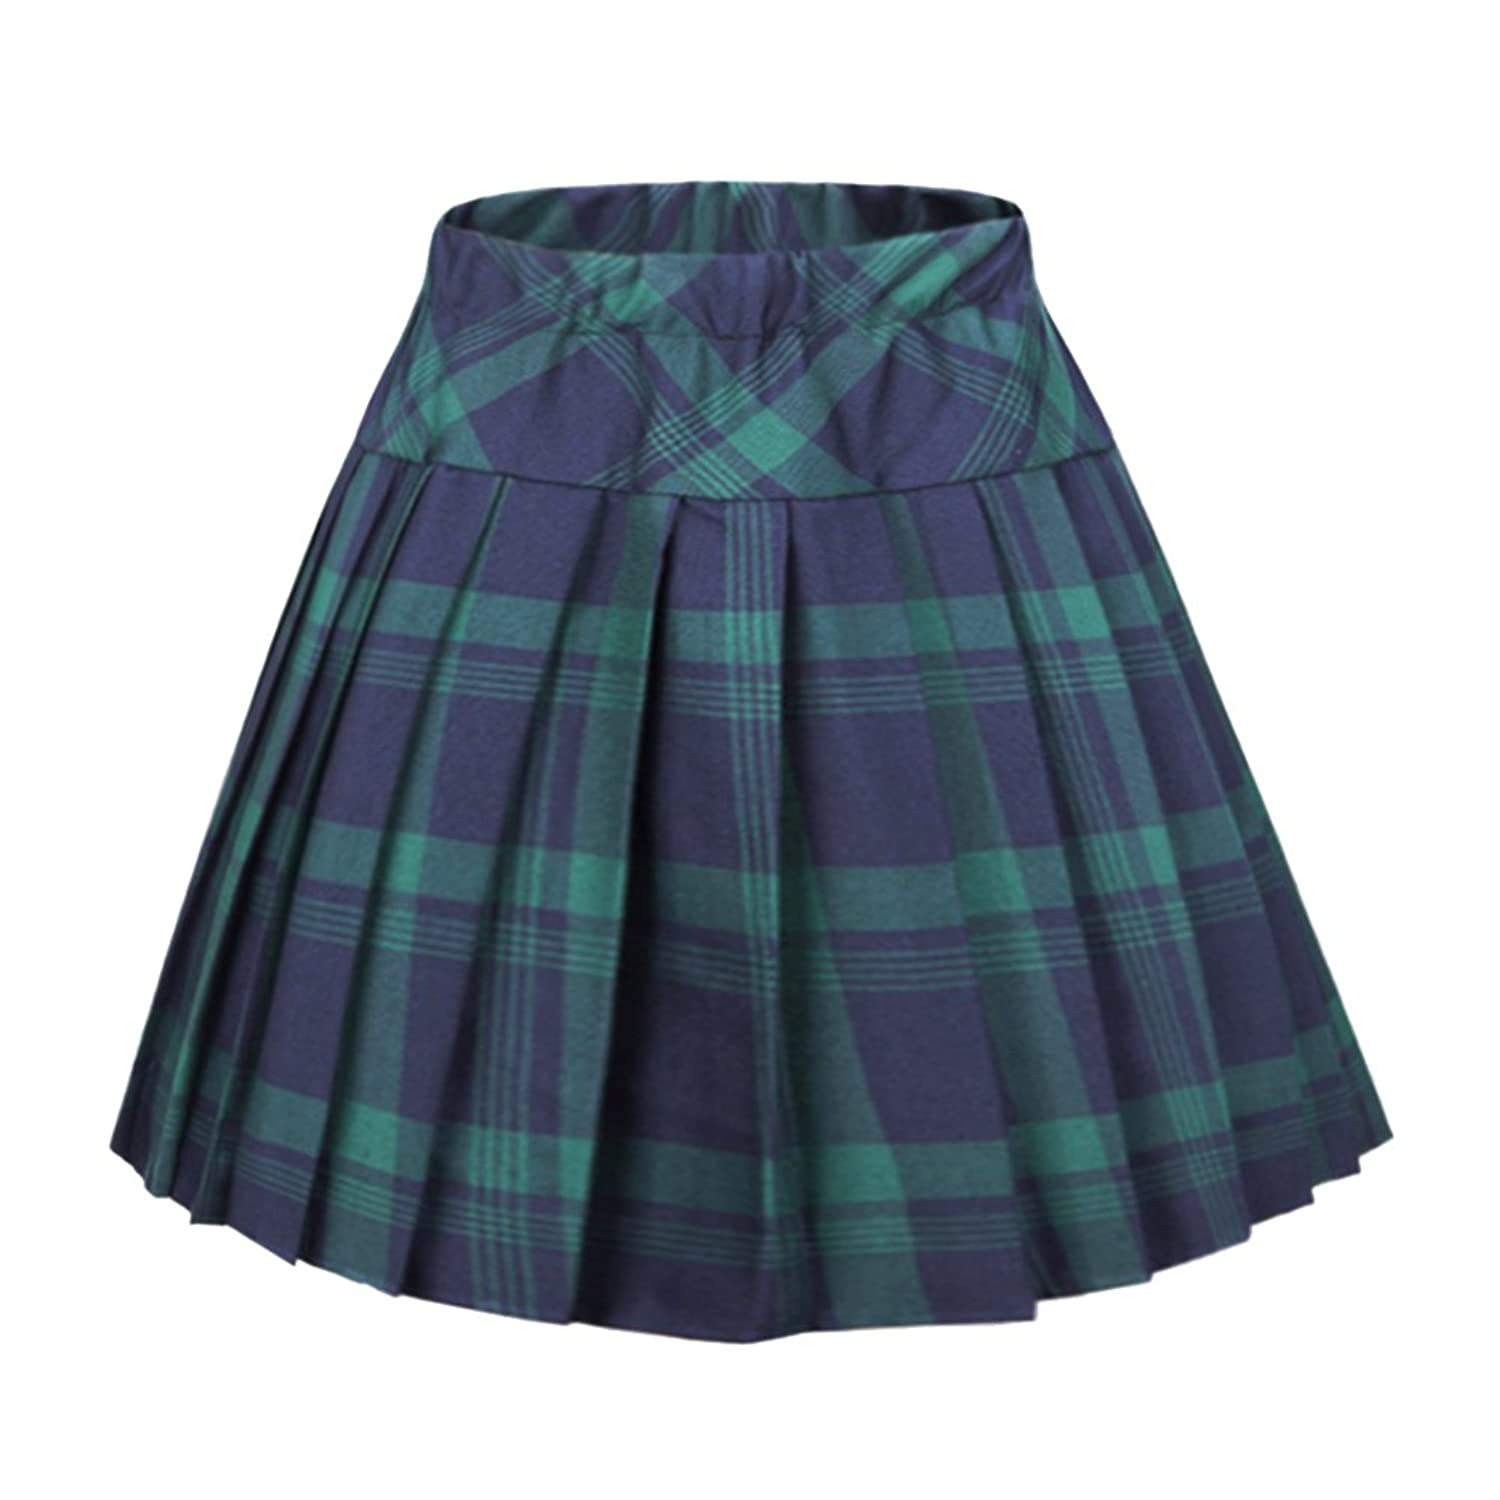 A plaid skirt imbranatine